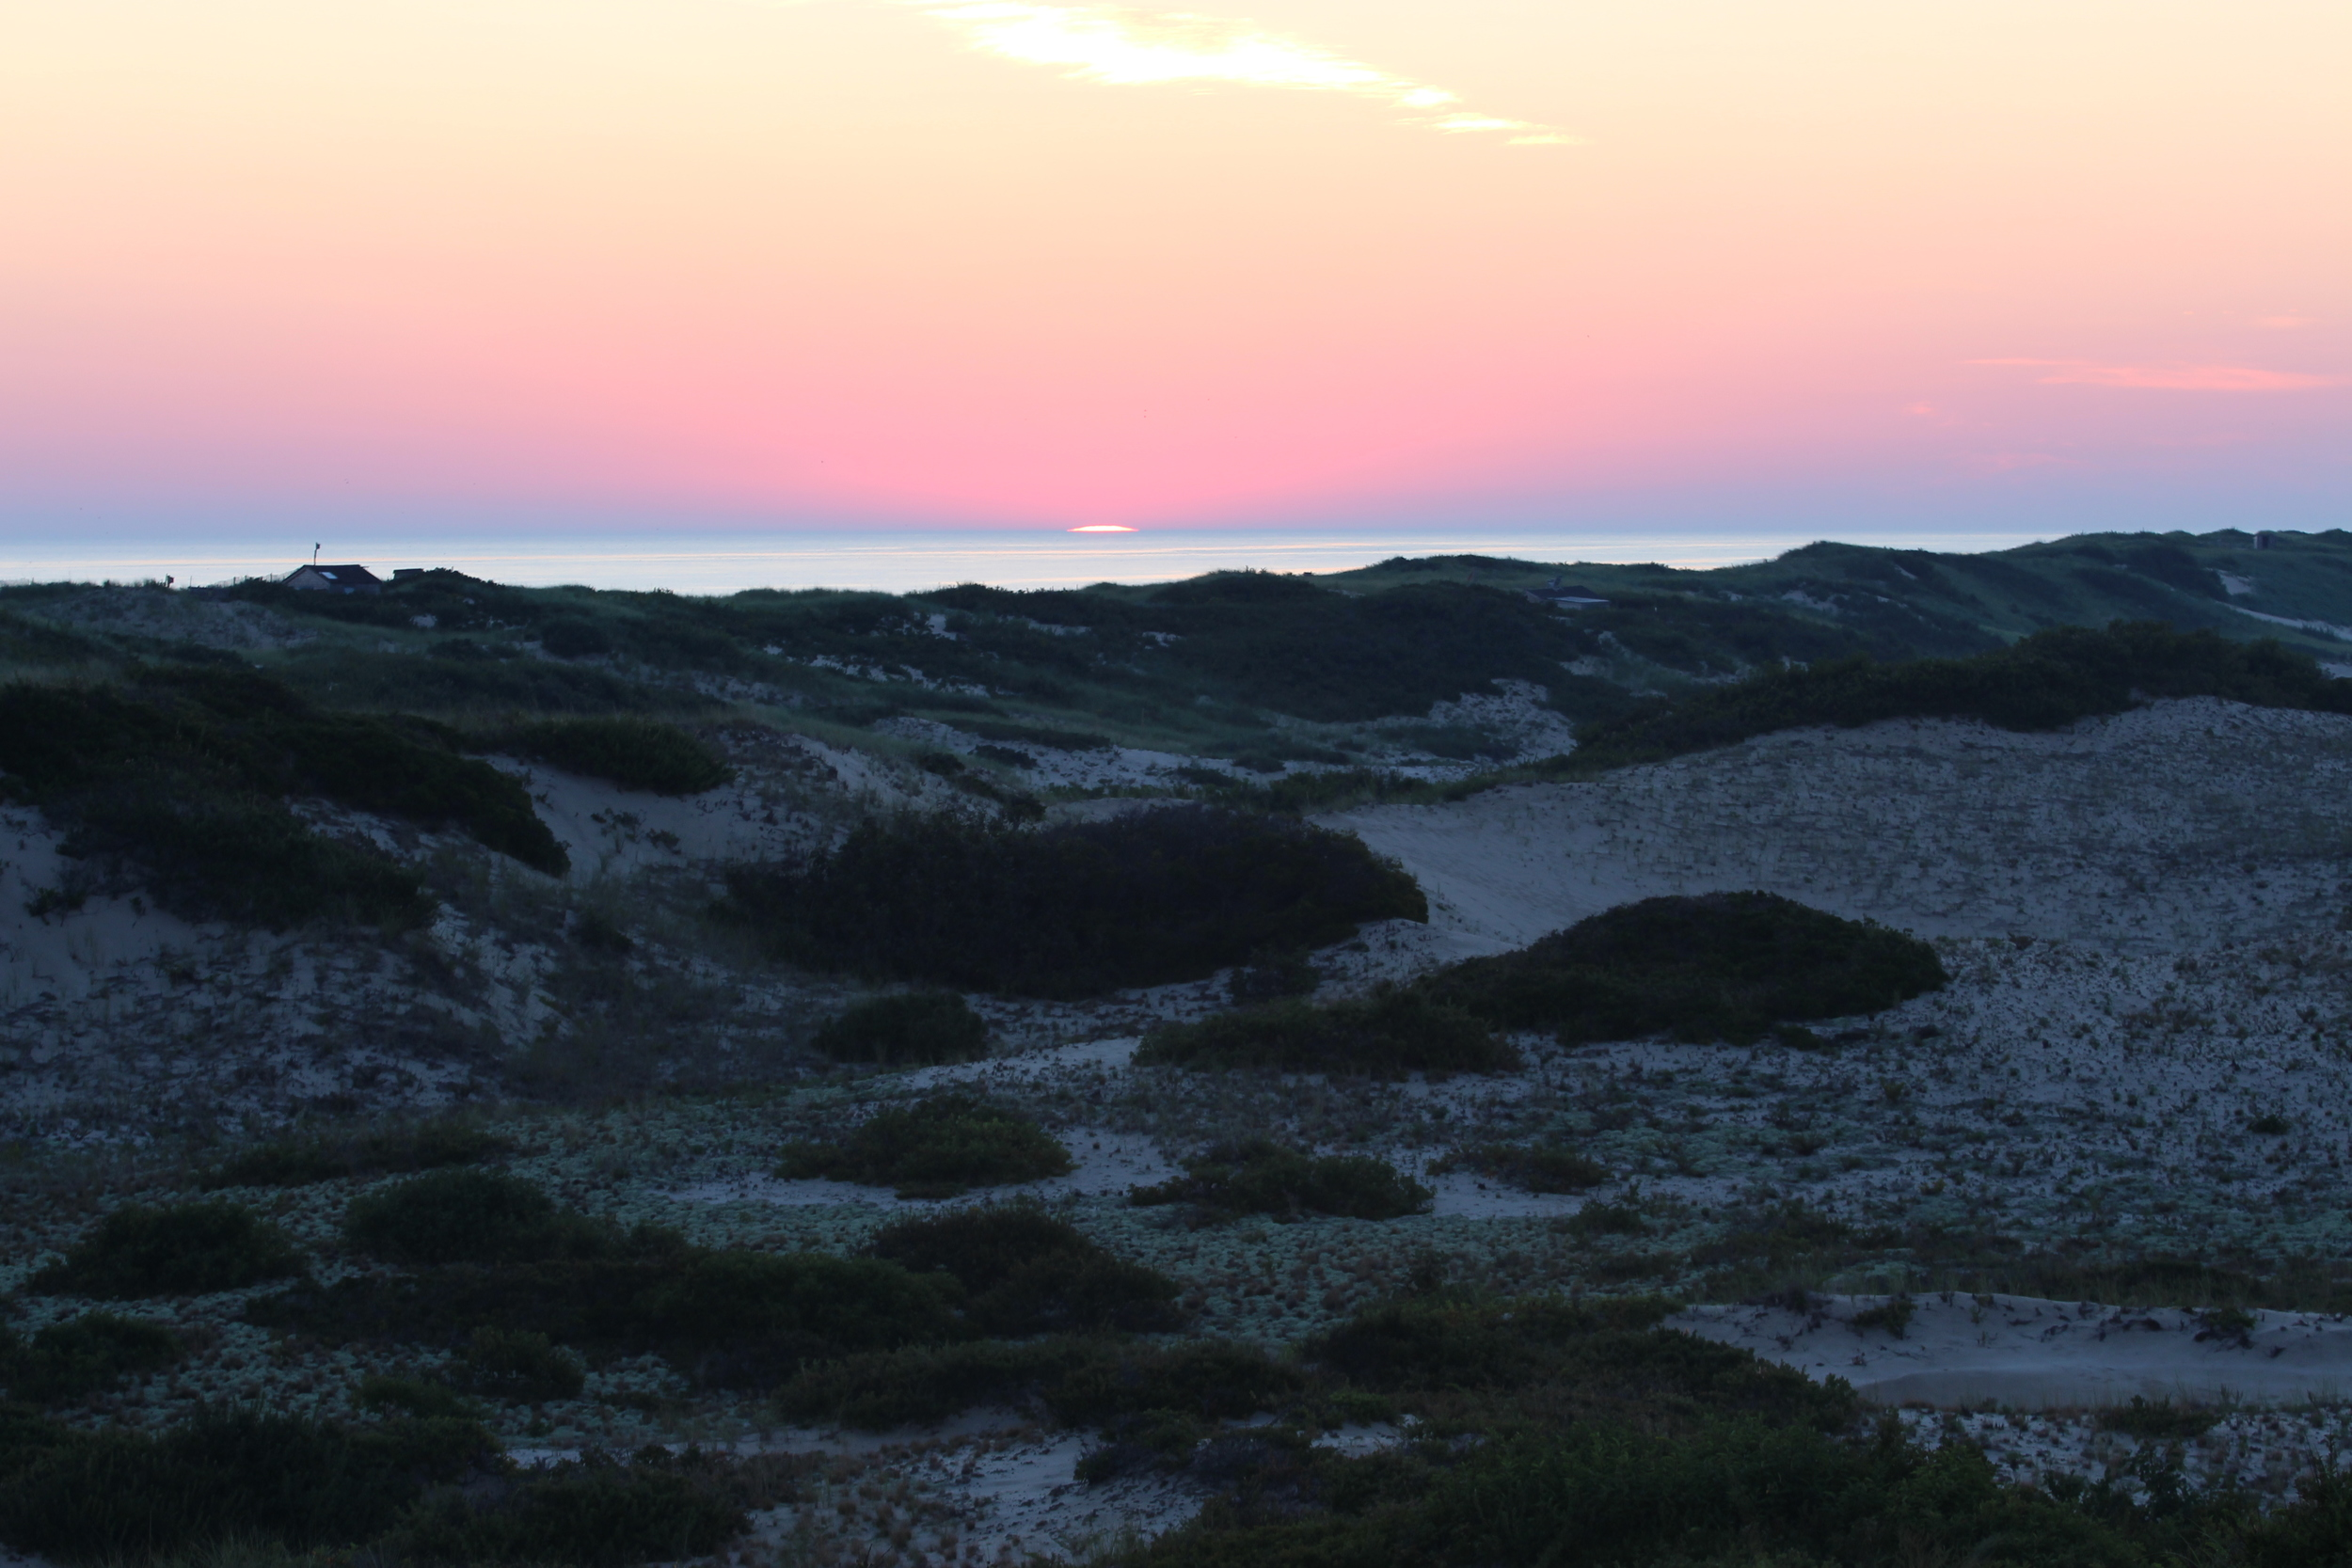 the dark dunes just before illumination